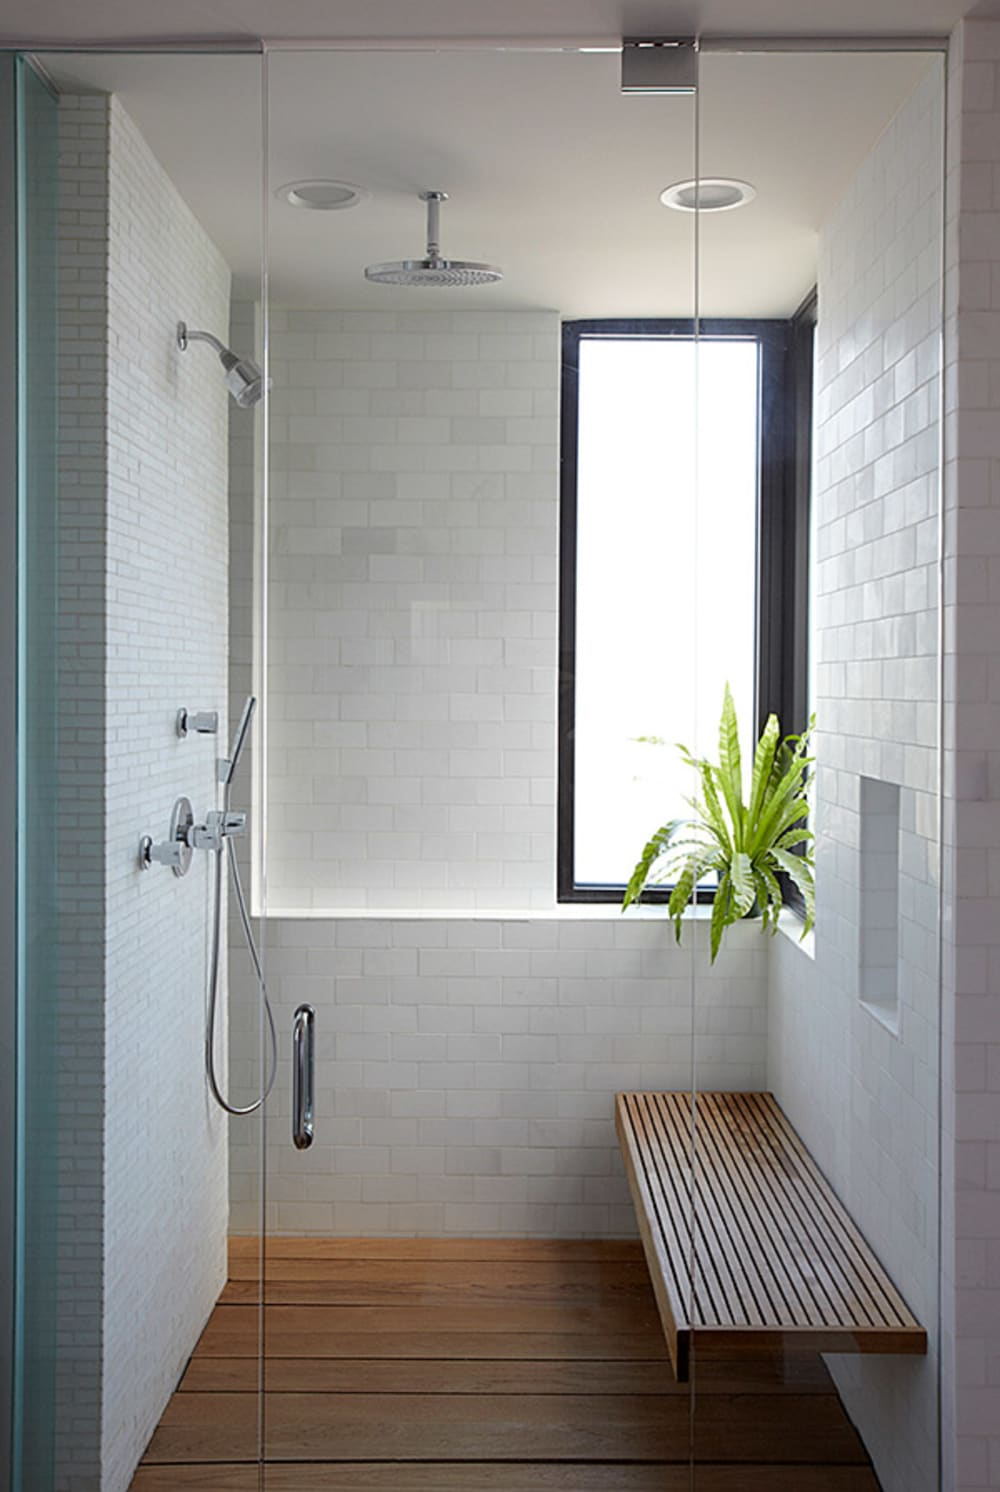 """Walk-in shower, great option to create a refuge area in a biophilic design.<span class=""""sr-only""""> (opened in a new window/tab)</span>"""